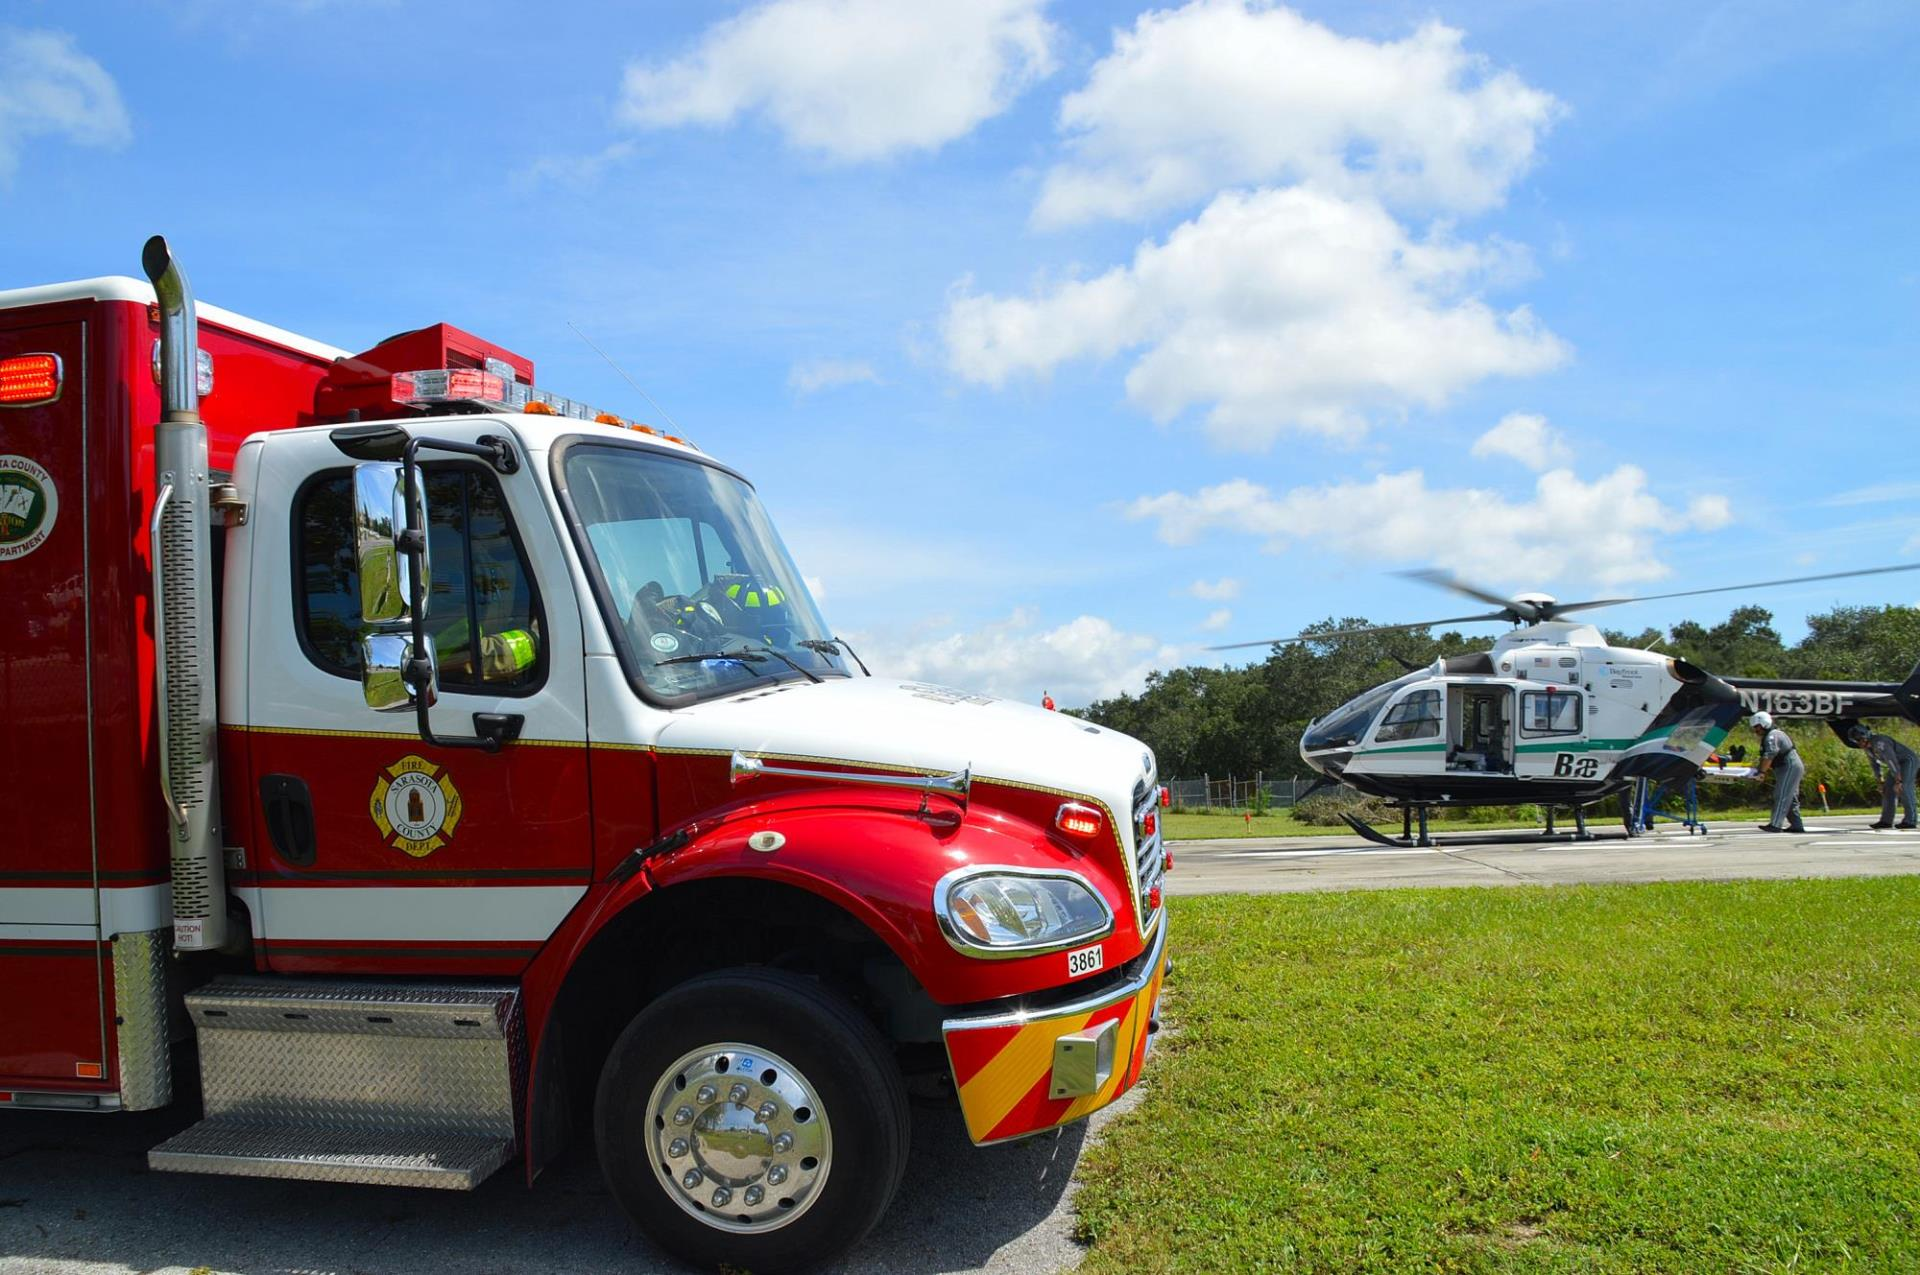 Sarasota County Fire Department | Sarasota County, FL